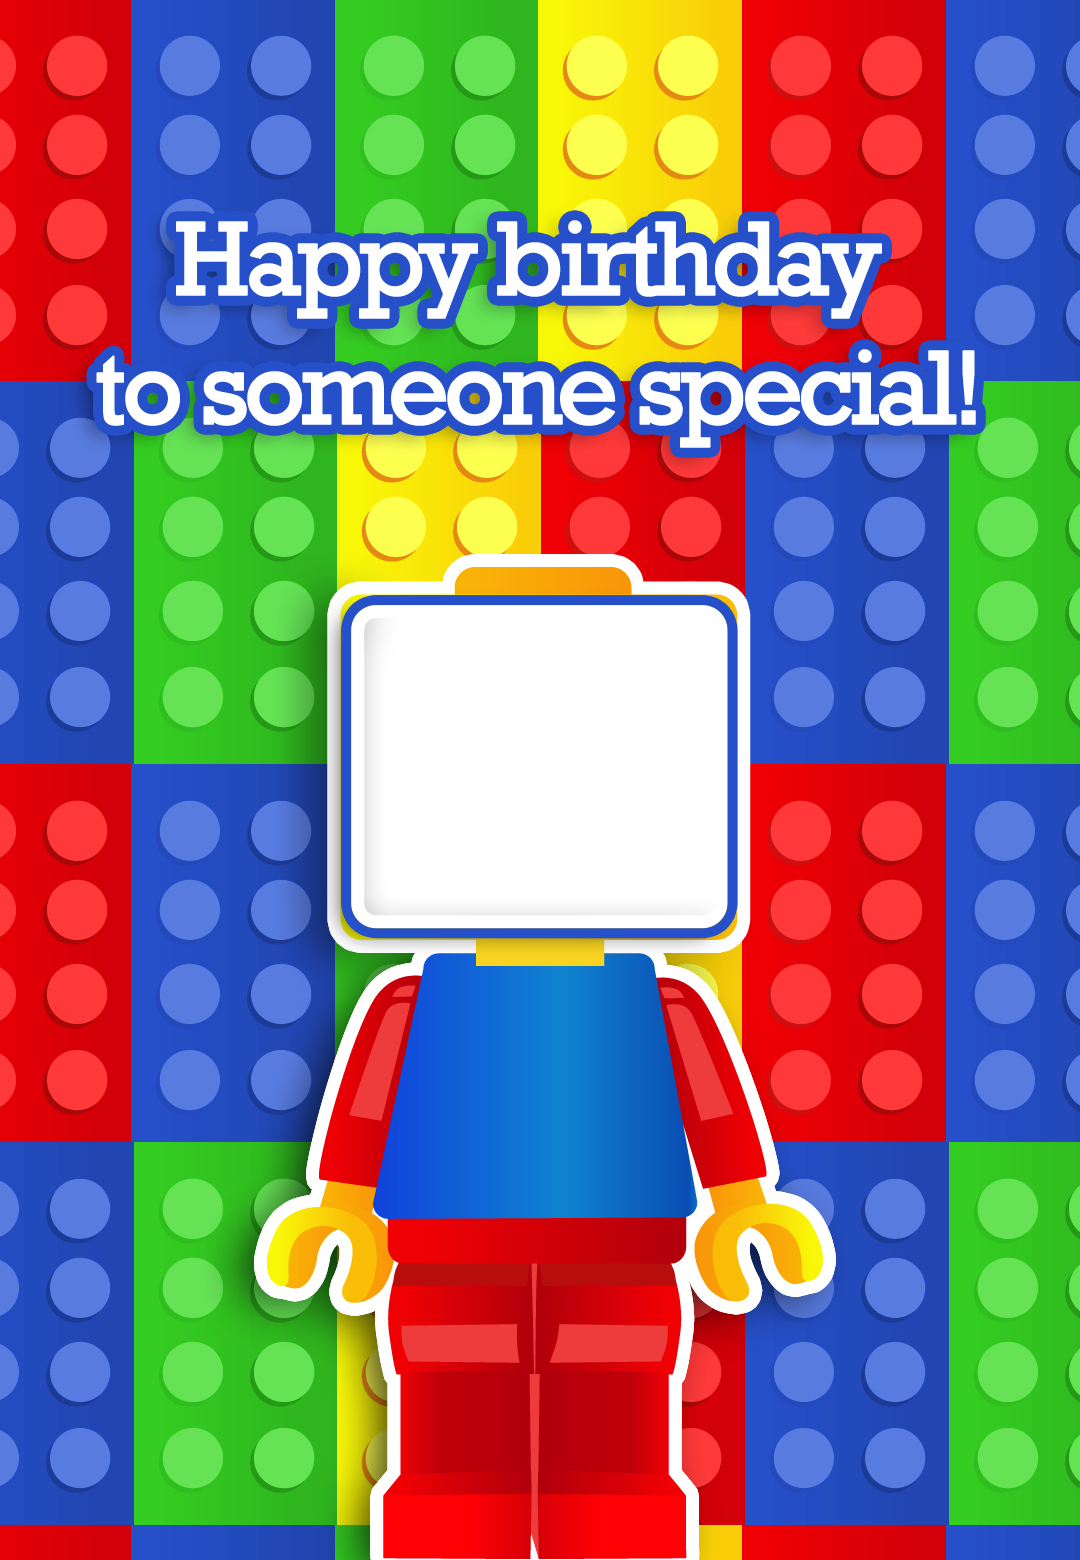 Free Printable To Someone Special Birthday Greeting Card With An Option To Add You Lego Birthday Cards Free Printable Birthday Cards Birthday Card Printable